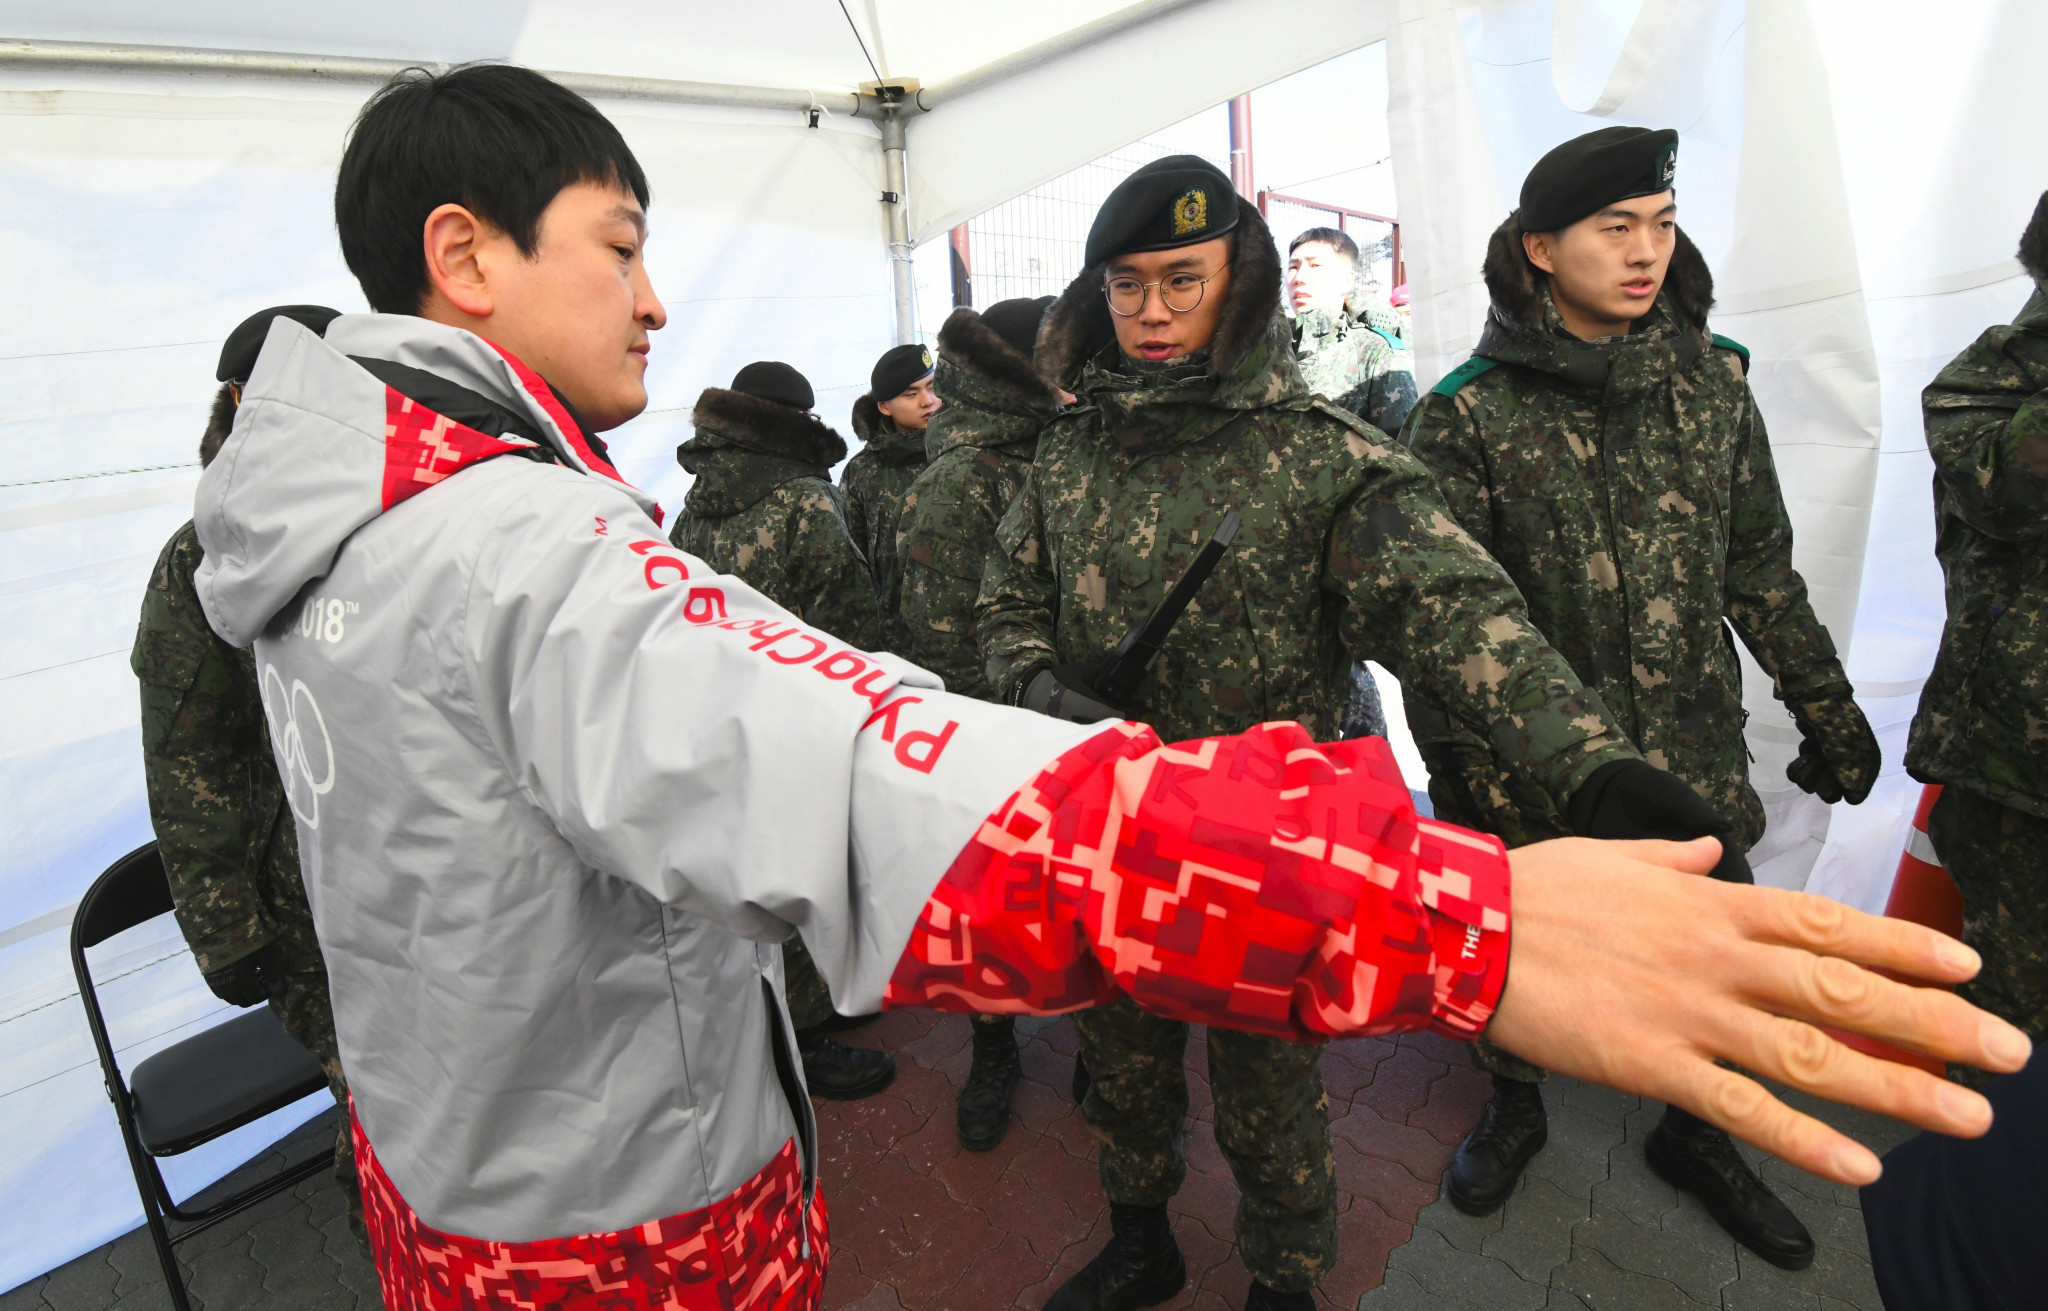 Norovirus outbreak at Pyeongchang 2018 confirmed to have been caused by toilet water tanks